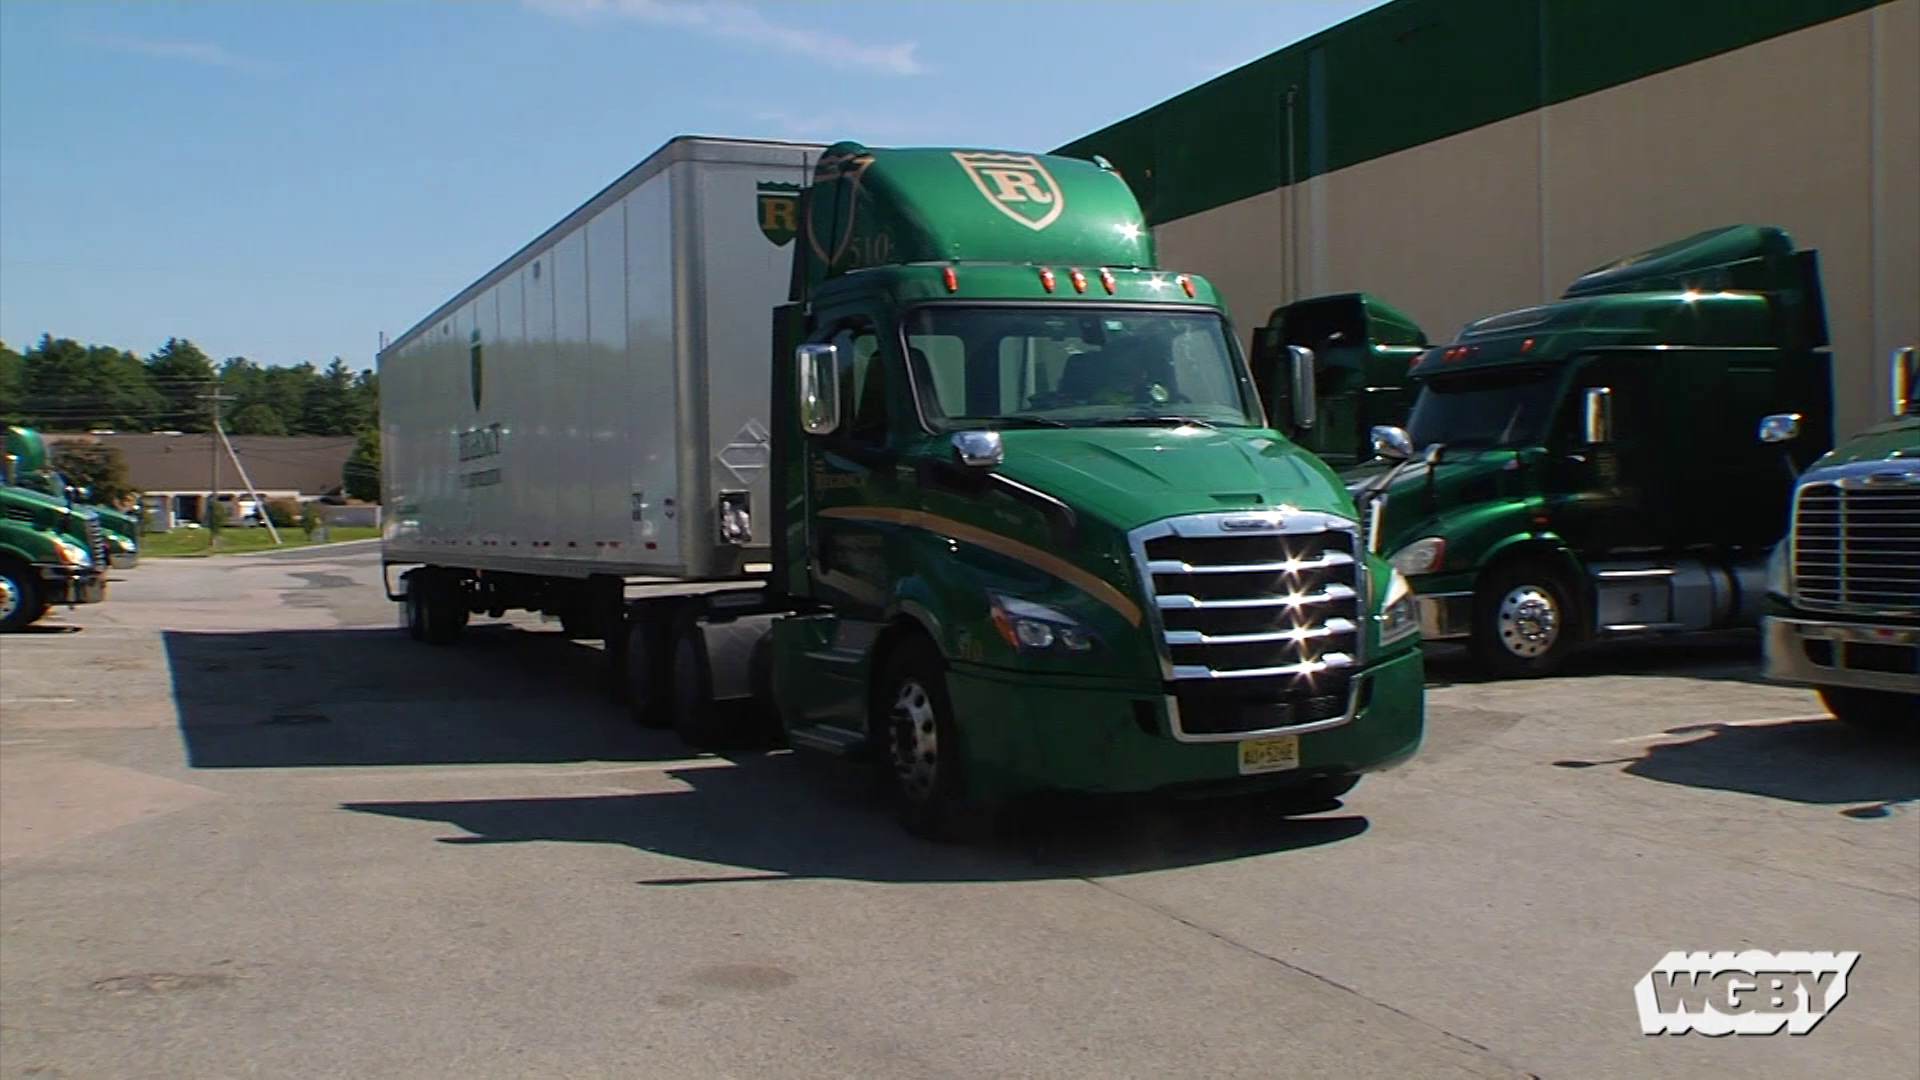 The United States is currenrtly facing a truck driver shortage that could affect the products and services we rely on each day.